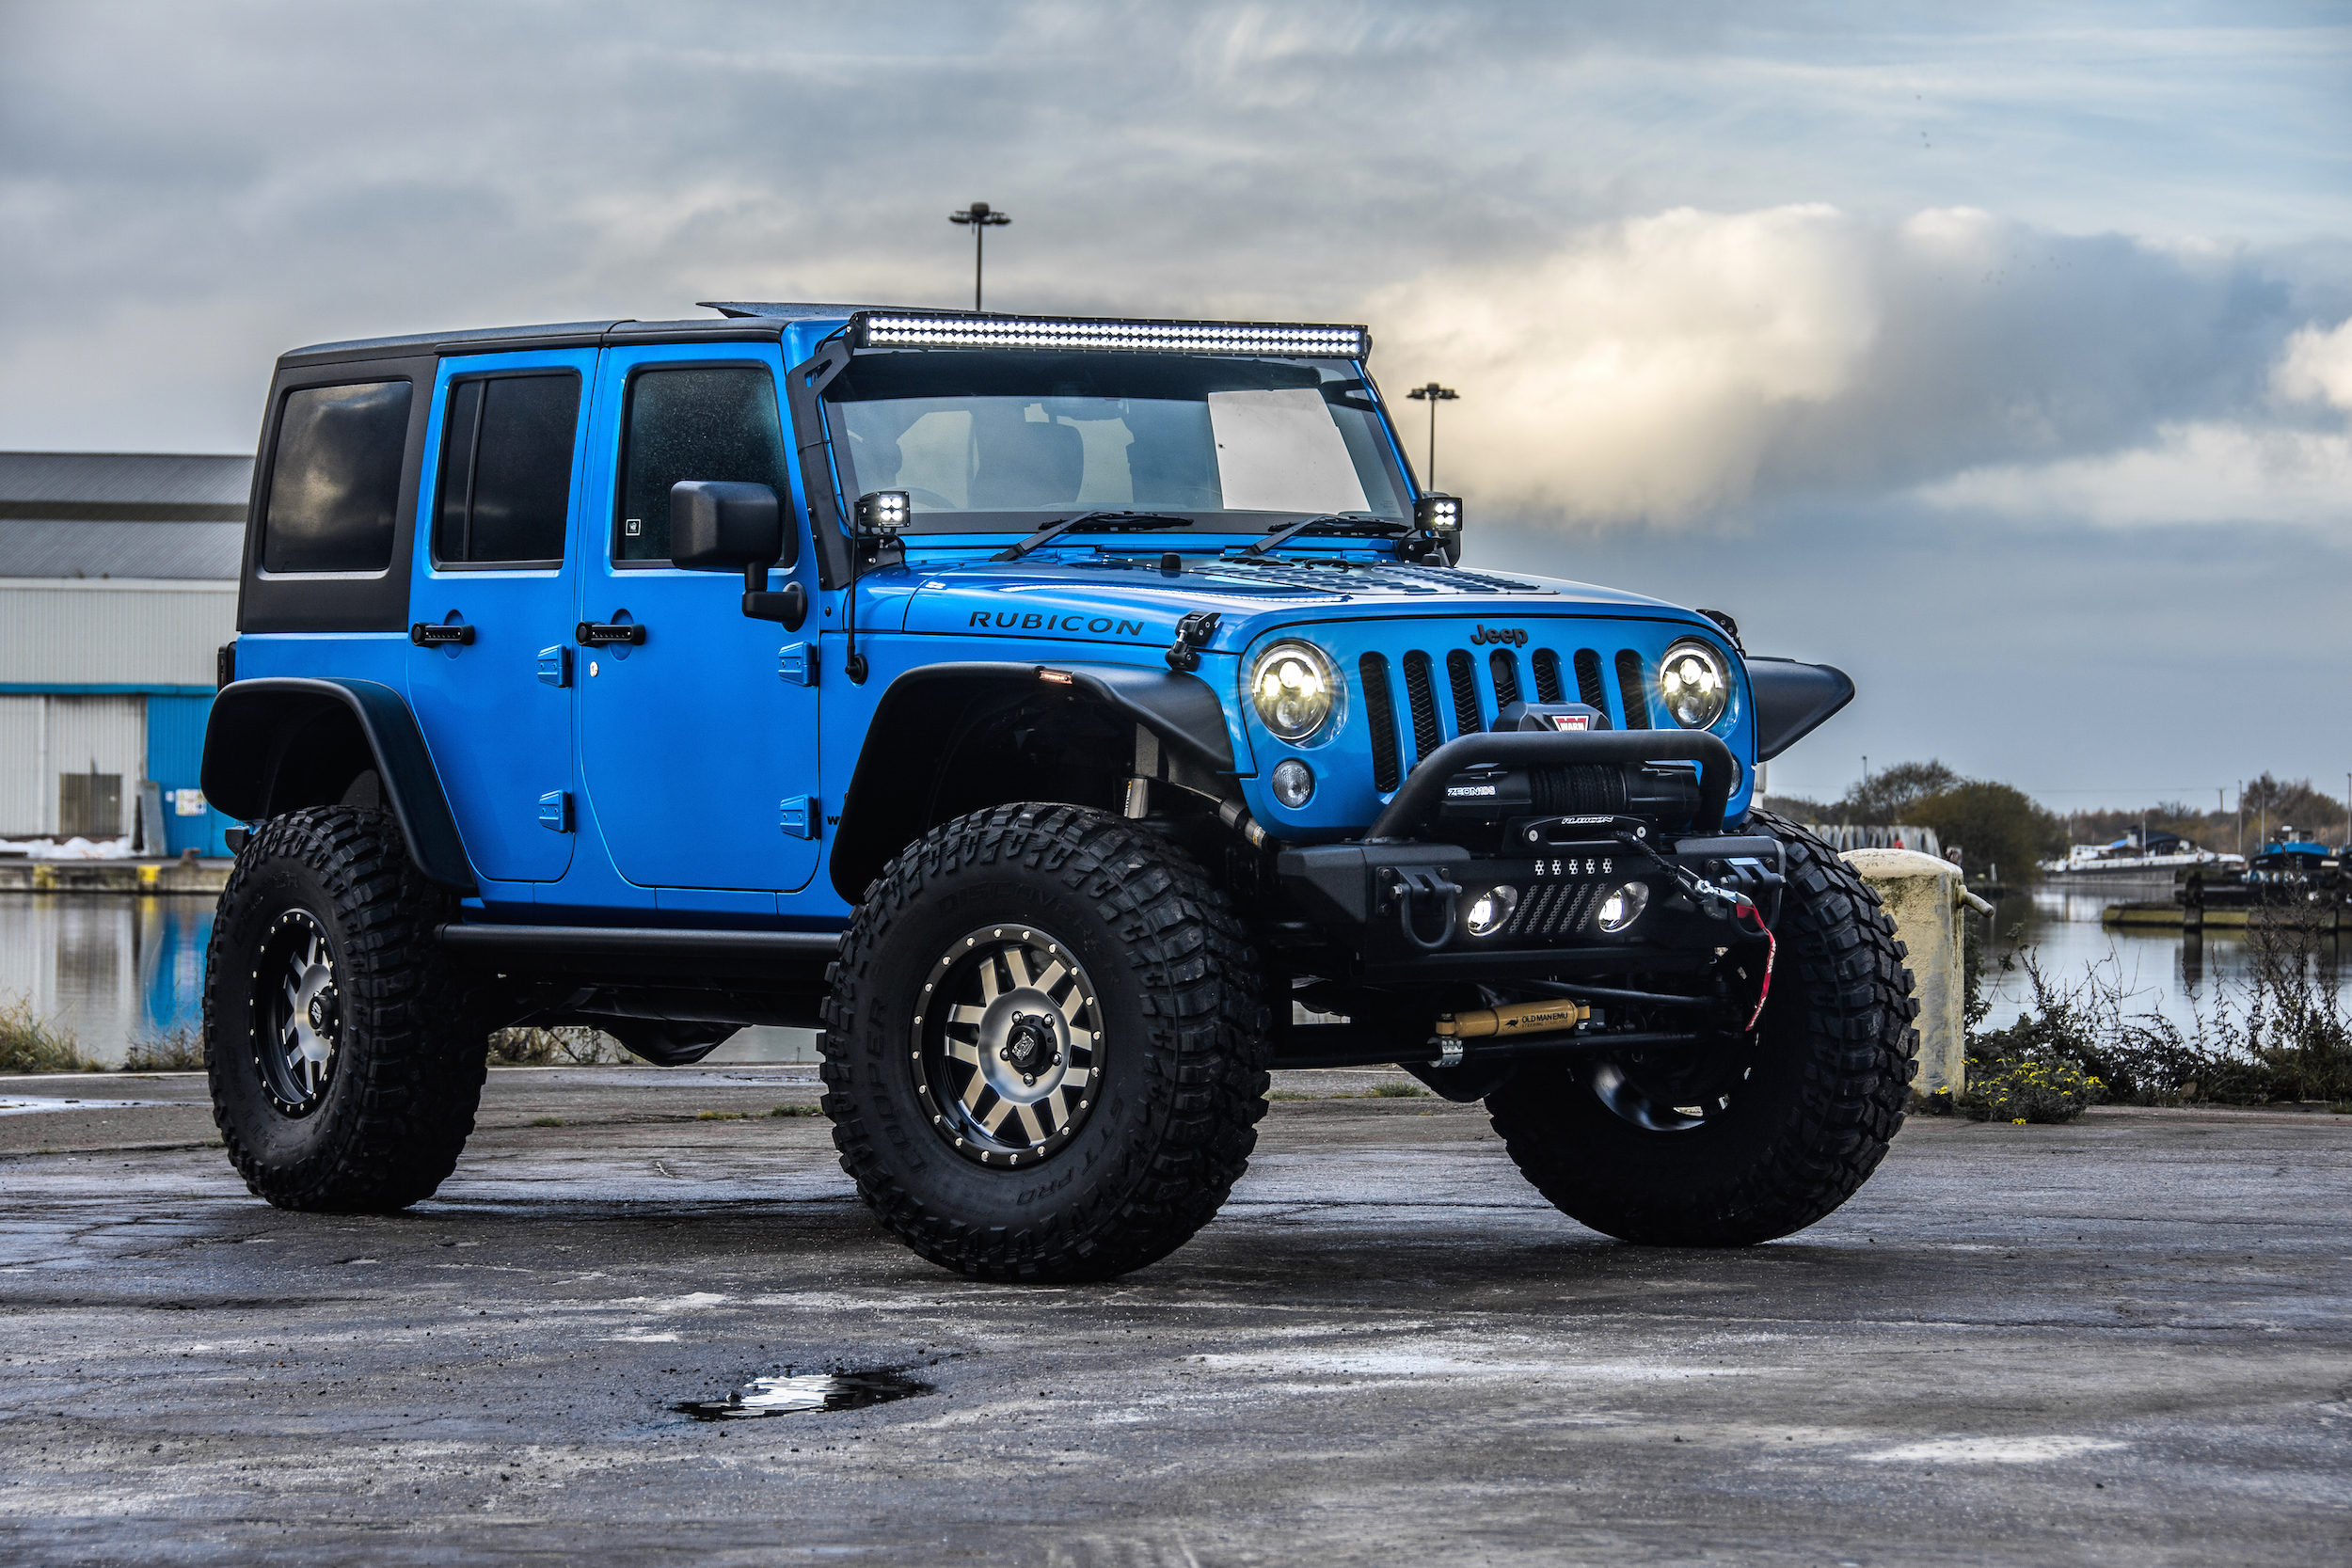 STORM 15, 2016 Jeep Wrangler Rubicon 4 Door 3.6L V6 | Showcase | Storm Jeeps